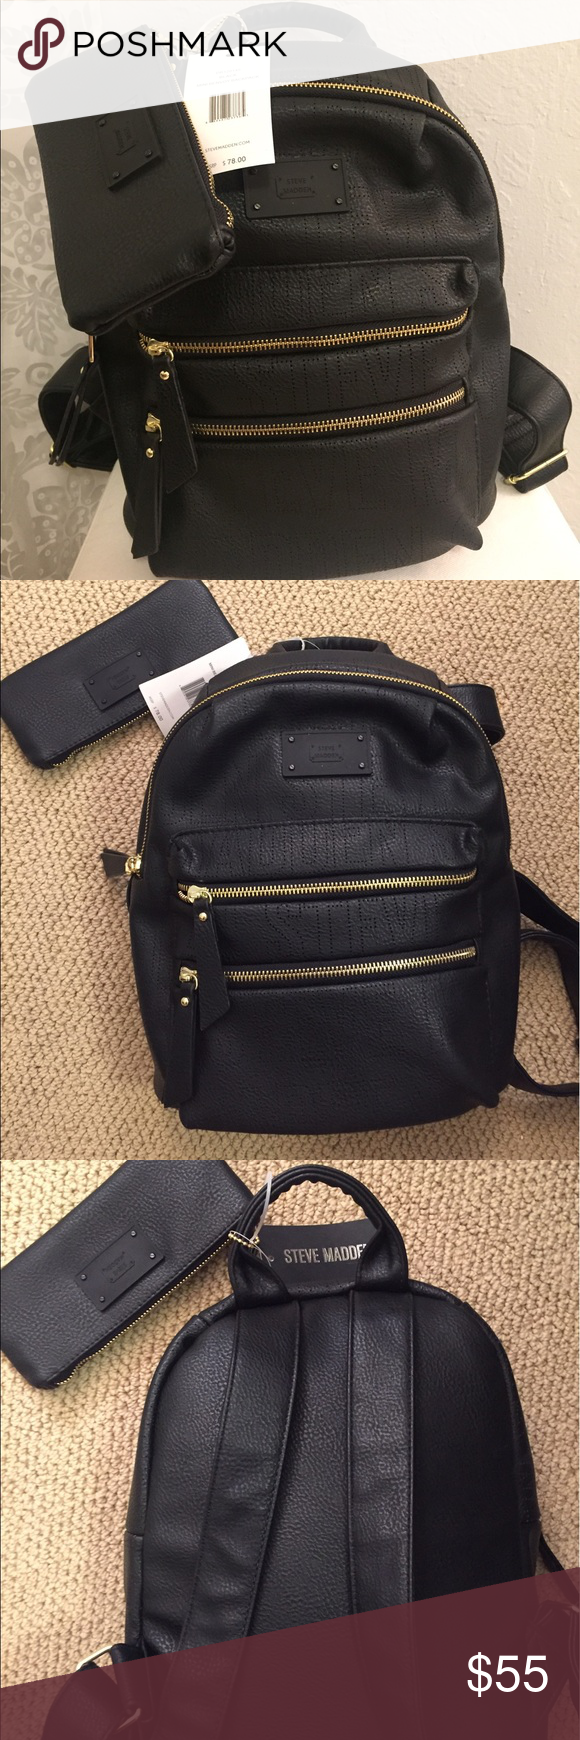 75b37f01e69 Steve Madden Black and Gold Backpack Black and gold never been used ...